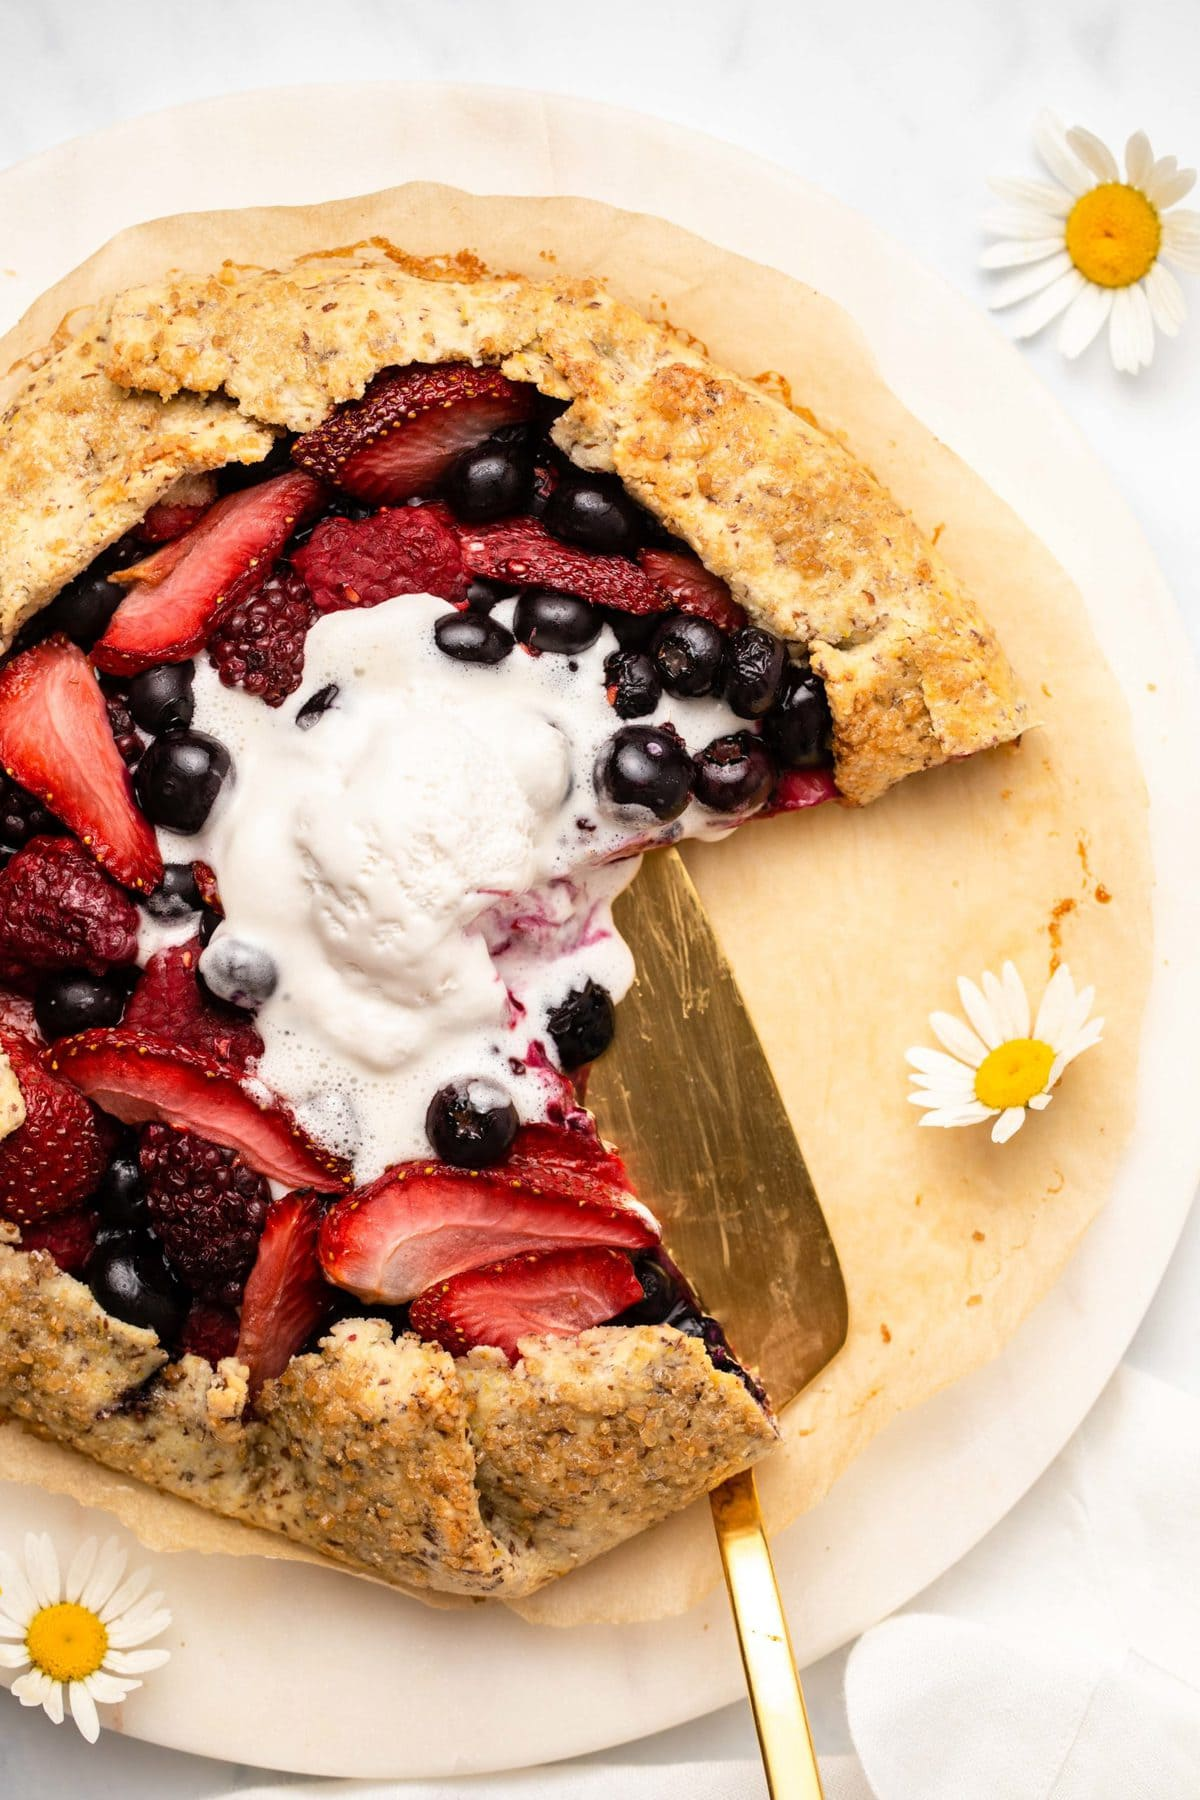 Baked berry galette with scoop of melting vanilla ice cream on top. A gold pie server is off to the side with a few daisies.